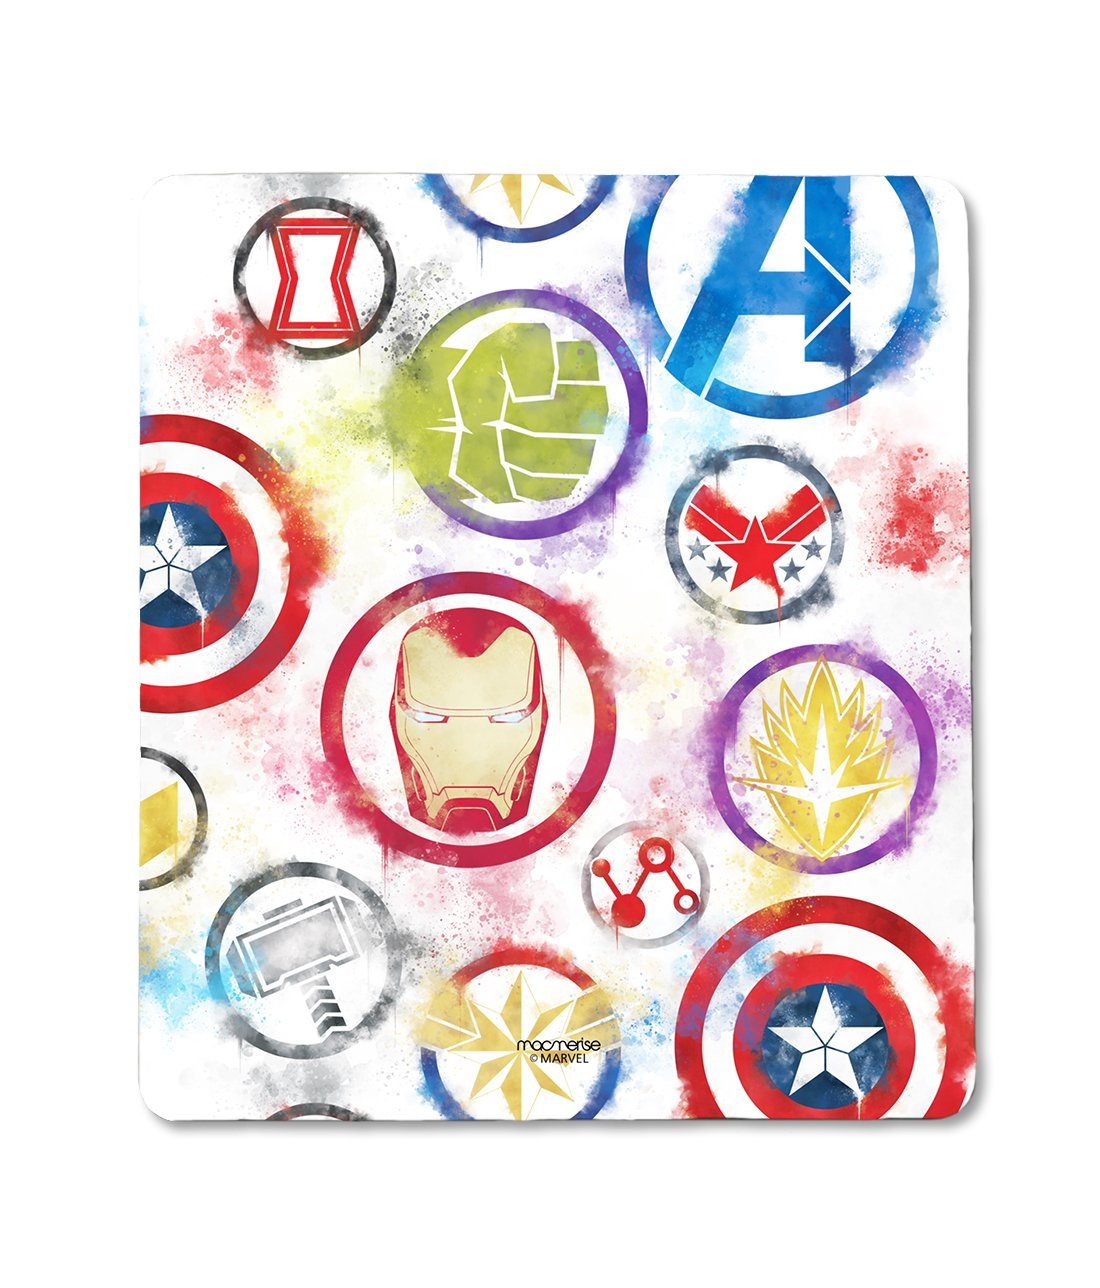 Avengers Icons Graffiti - Mouse Pad by Macmerise